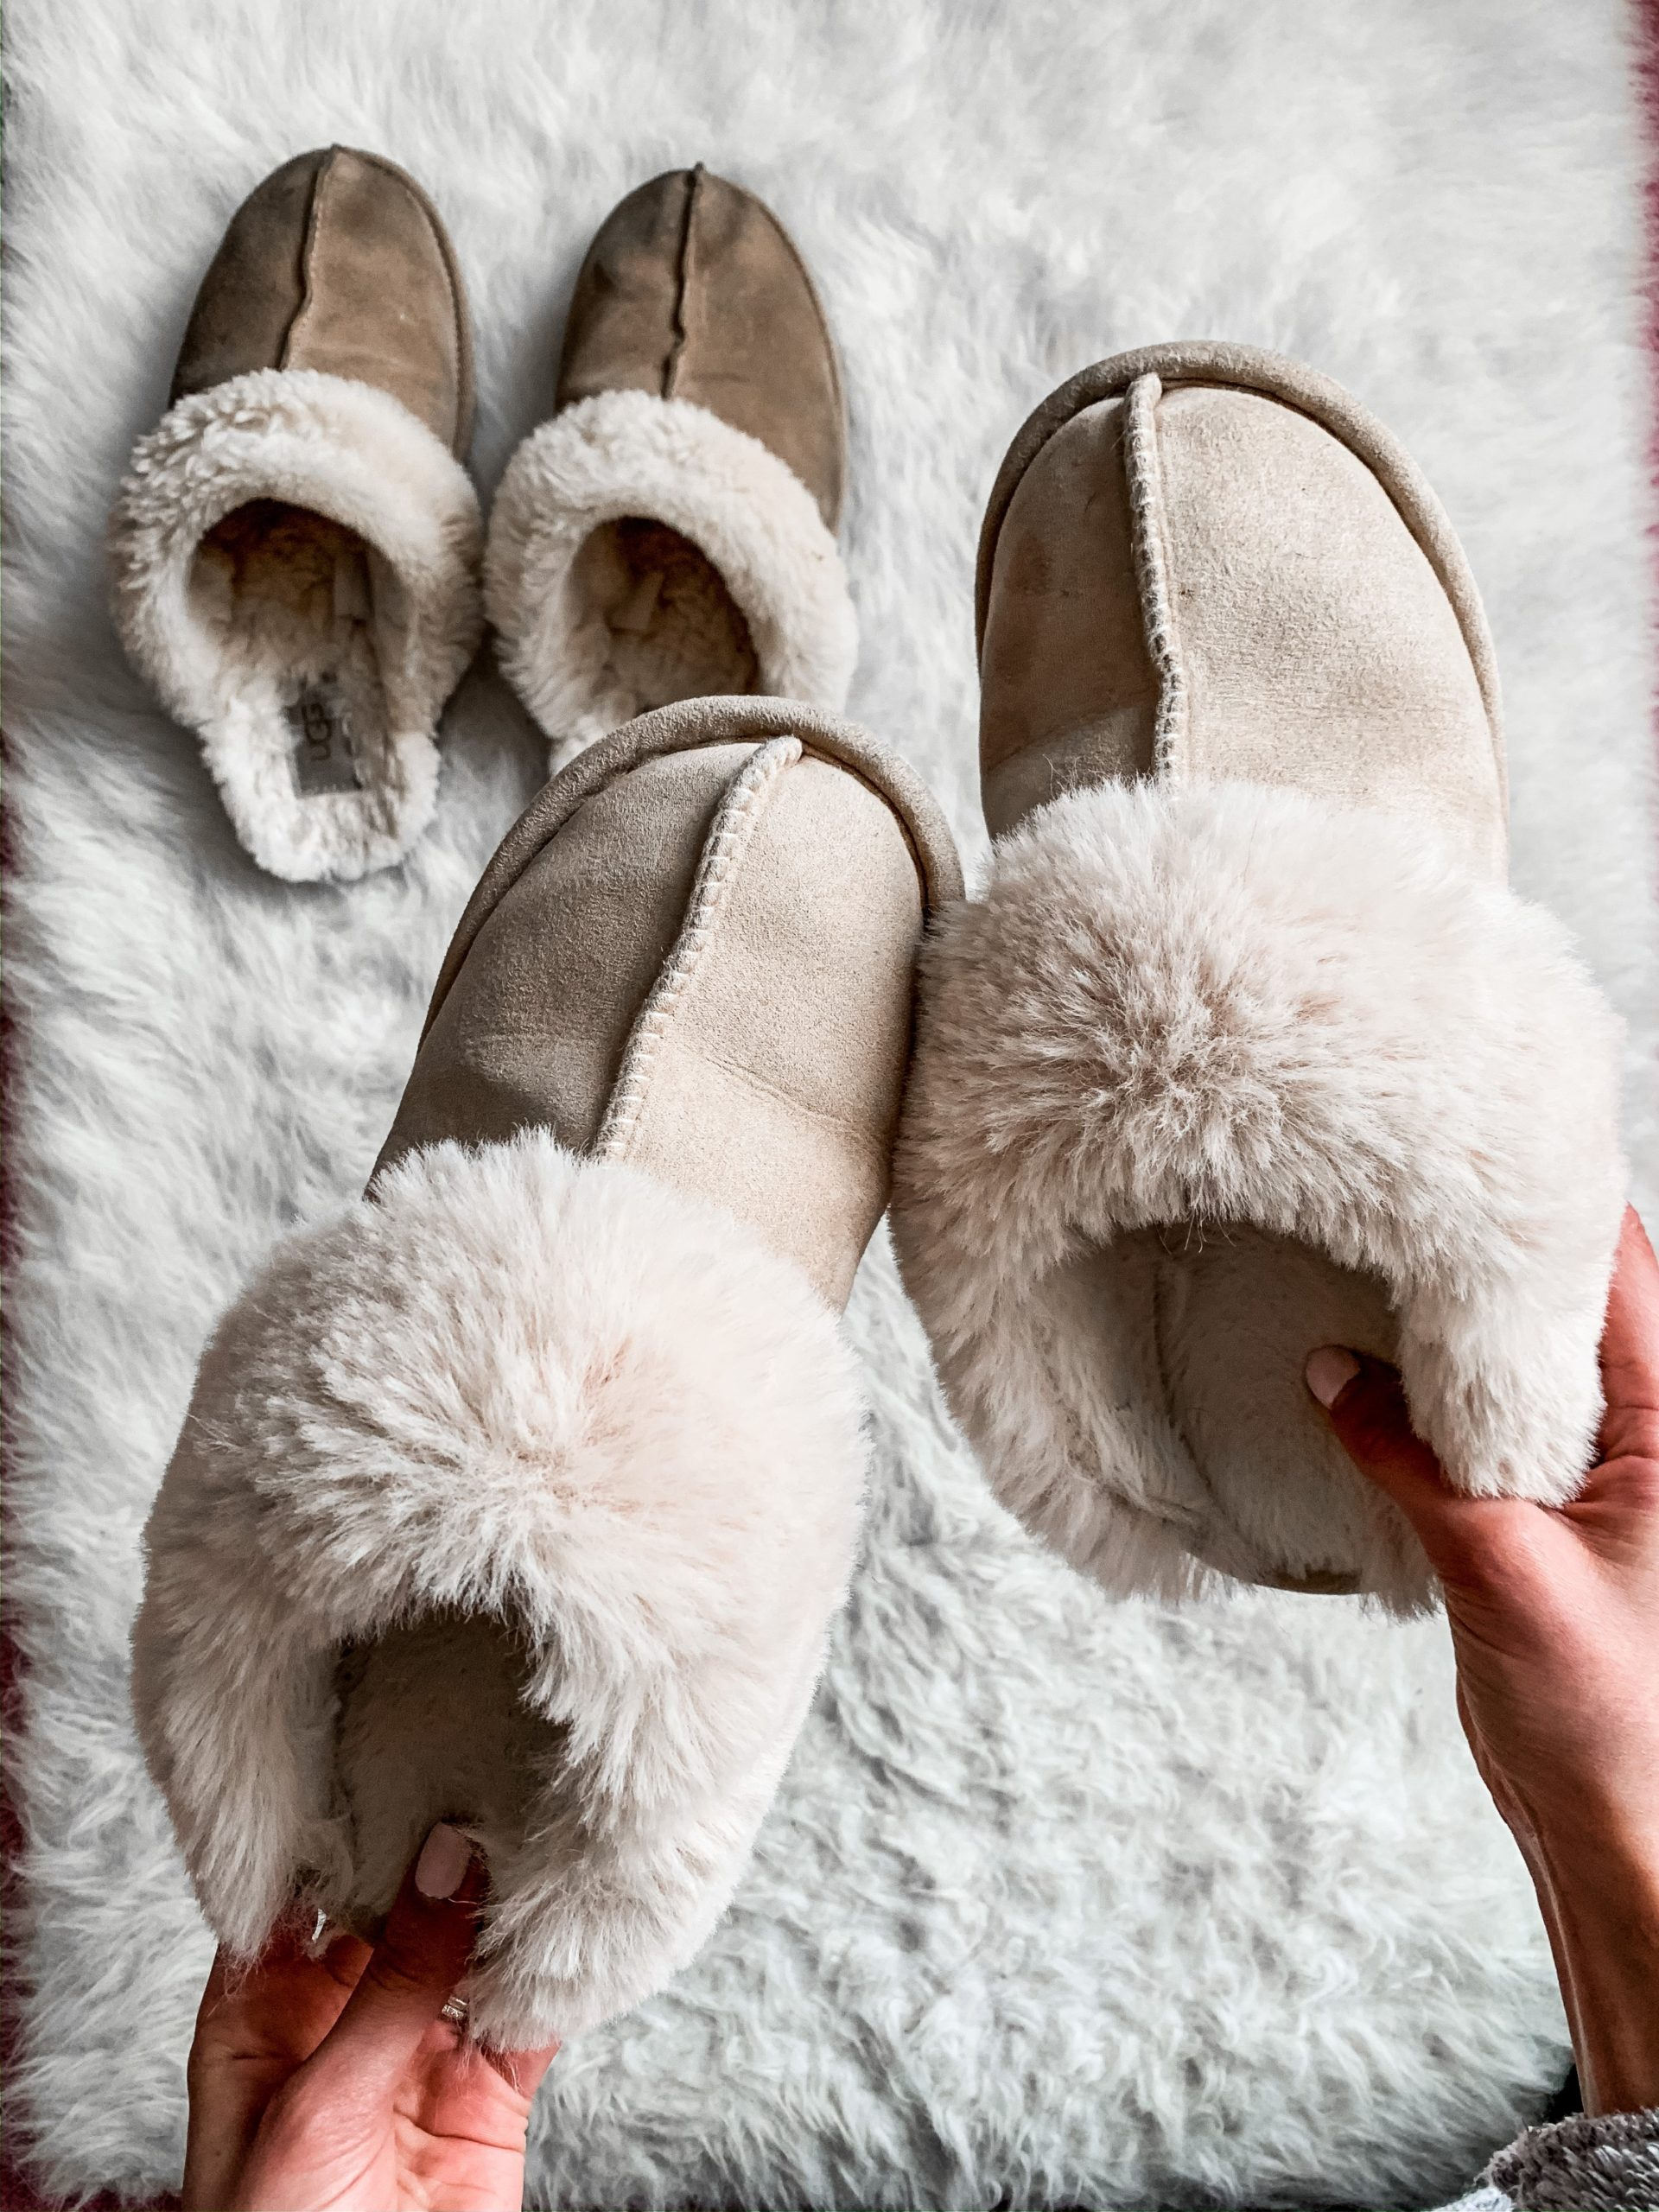 DUPED: UGG SLIPPERS - The Best UGG Slipper Dupes are $20 on Amazon!